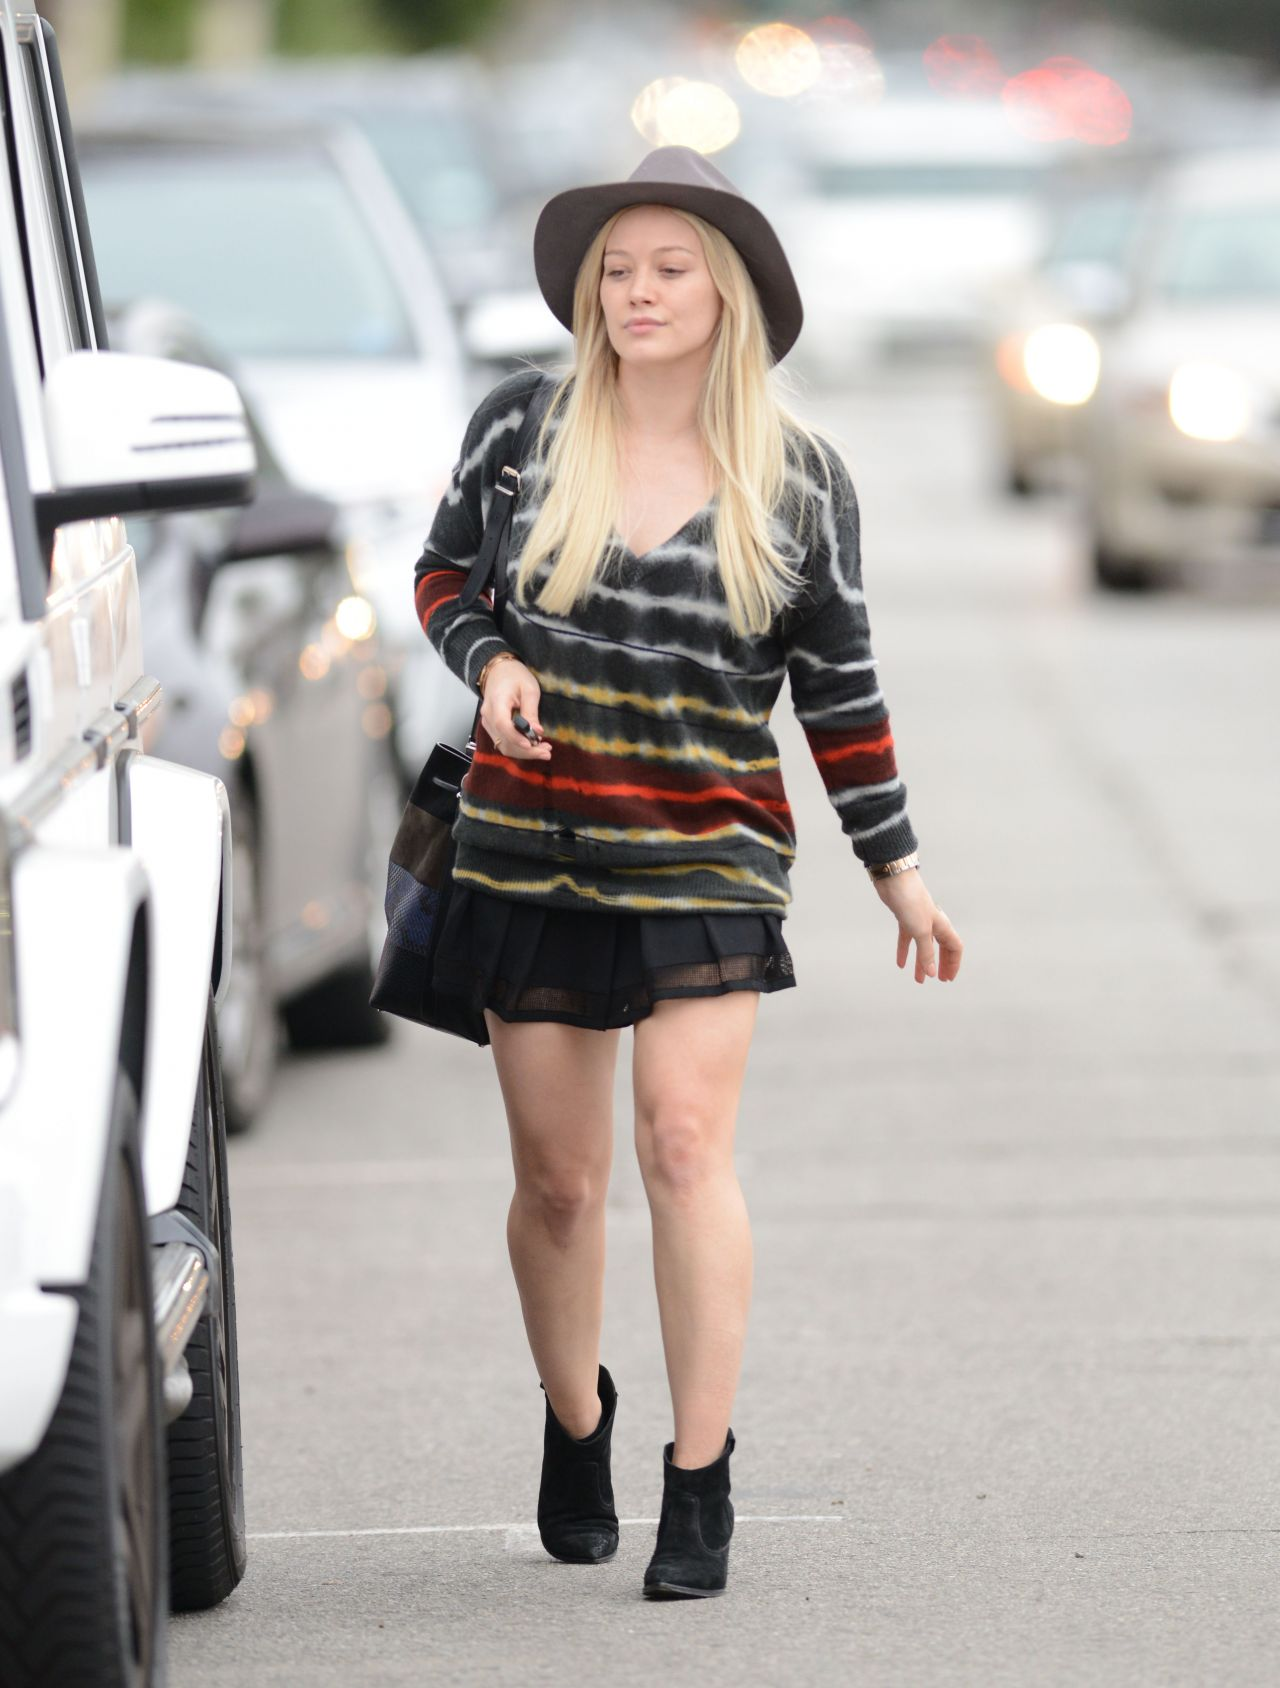 Hilary Duff Shows Off Her Legs In Mini Skirt Out In Los